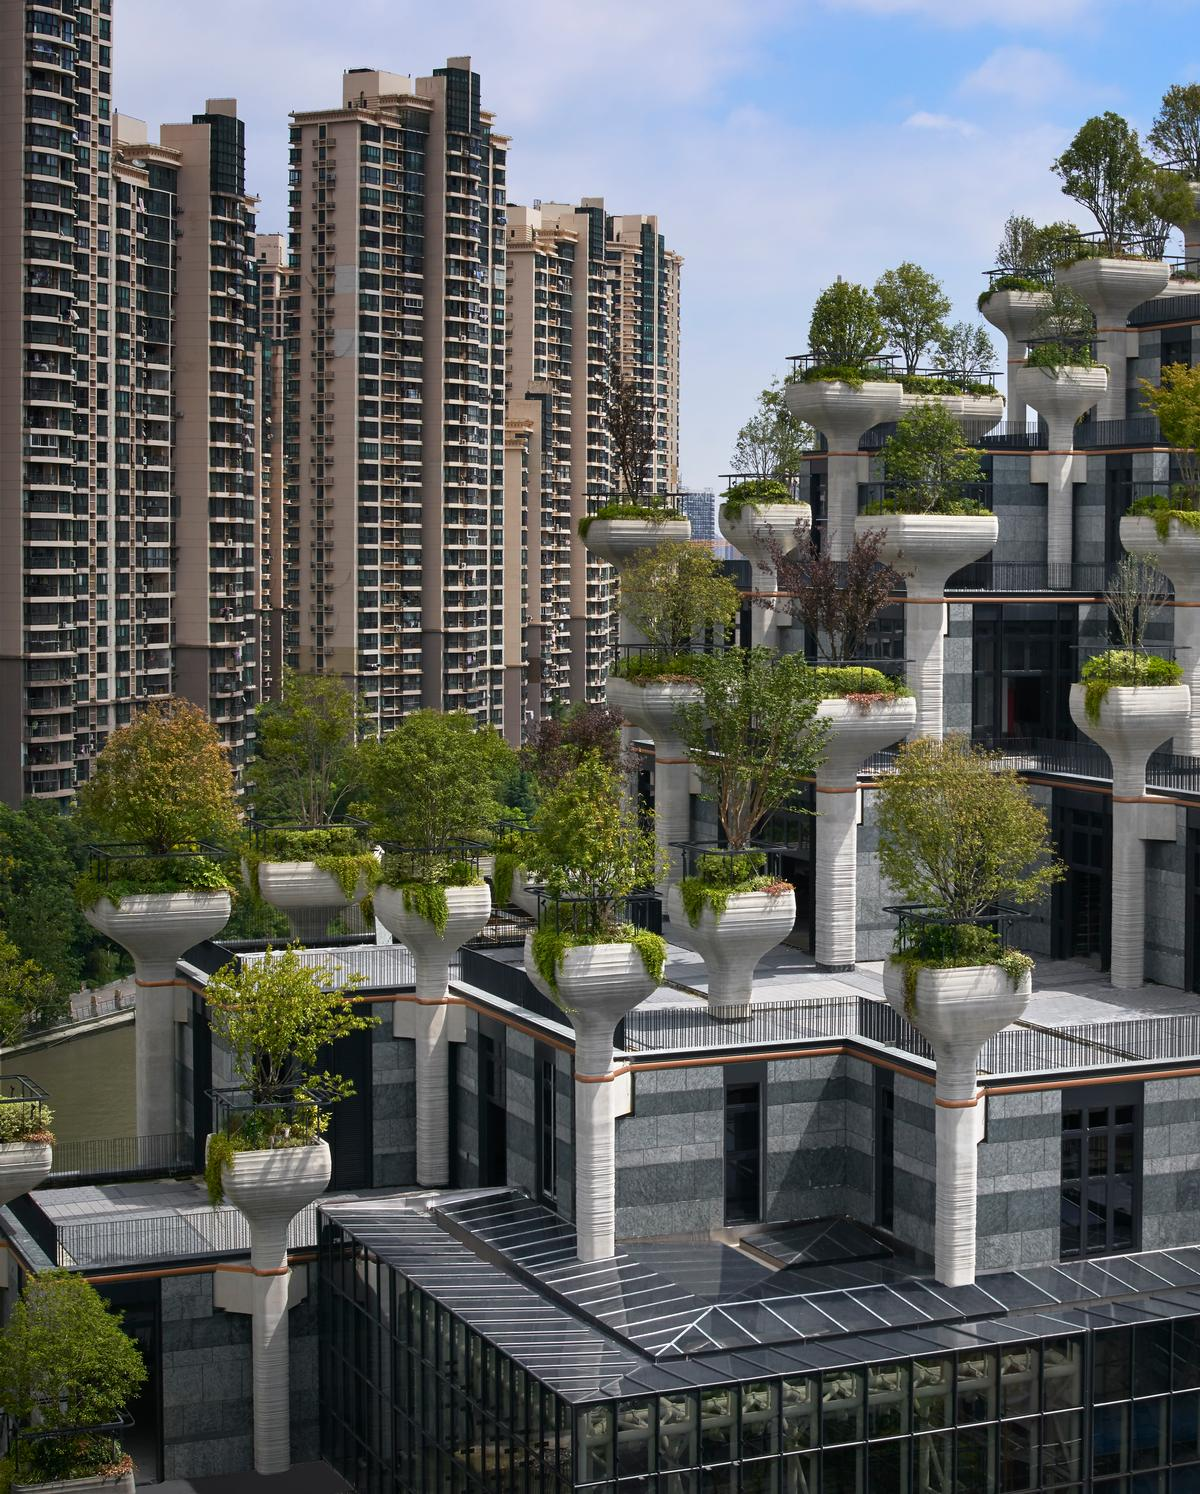 The building's edges are lowered to minimise its impact on the surrounding area / Qingyan Zhu